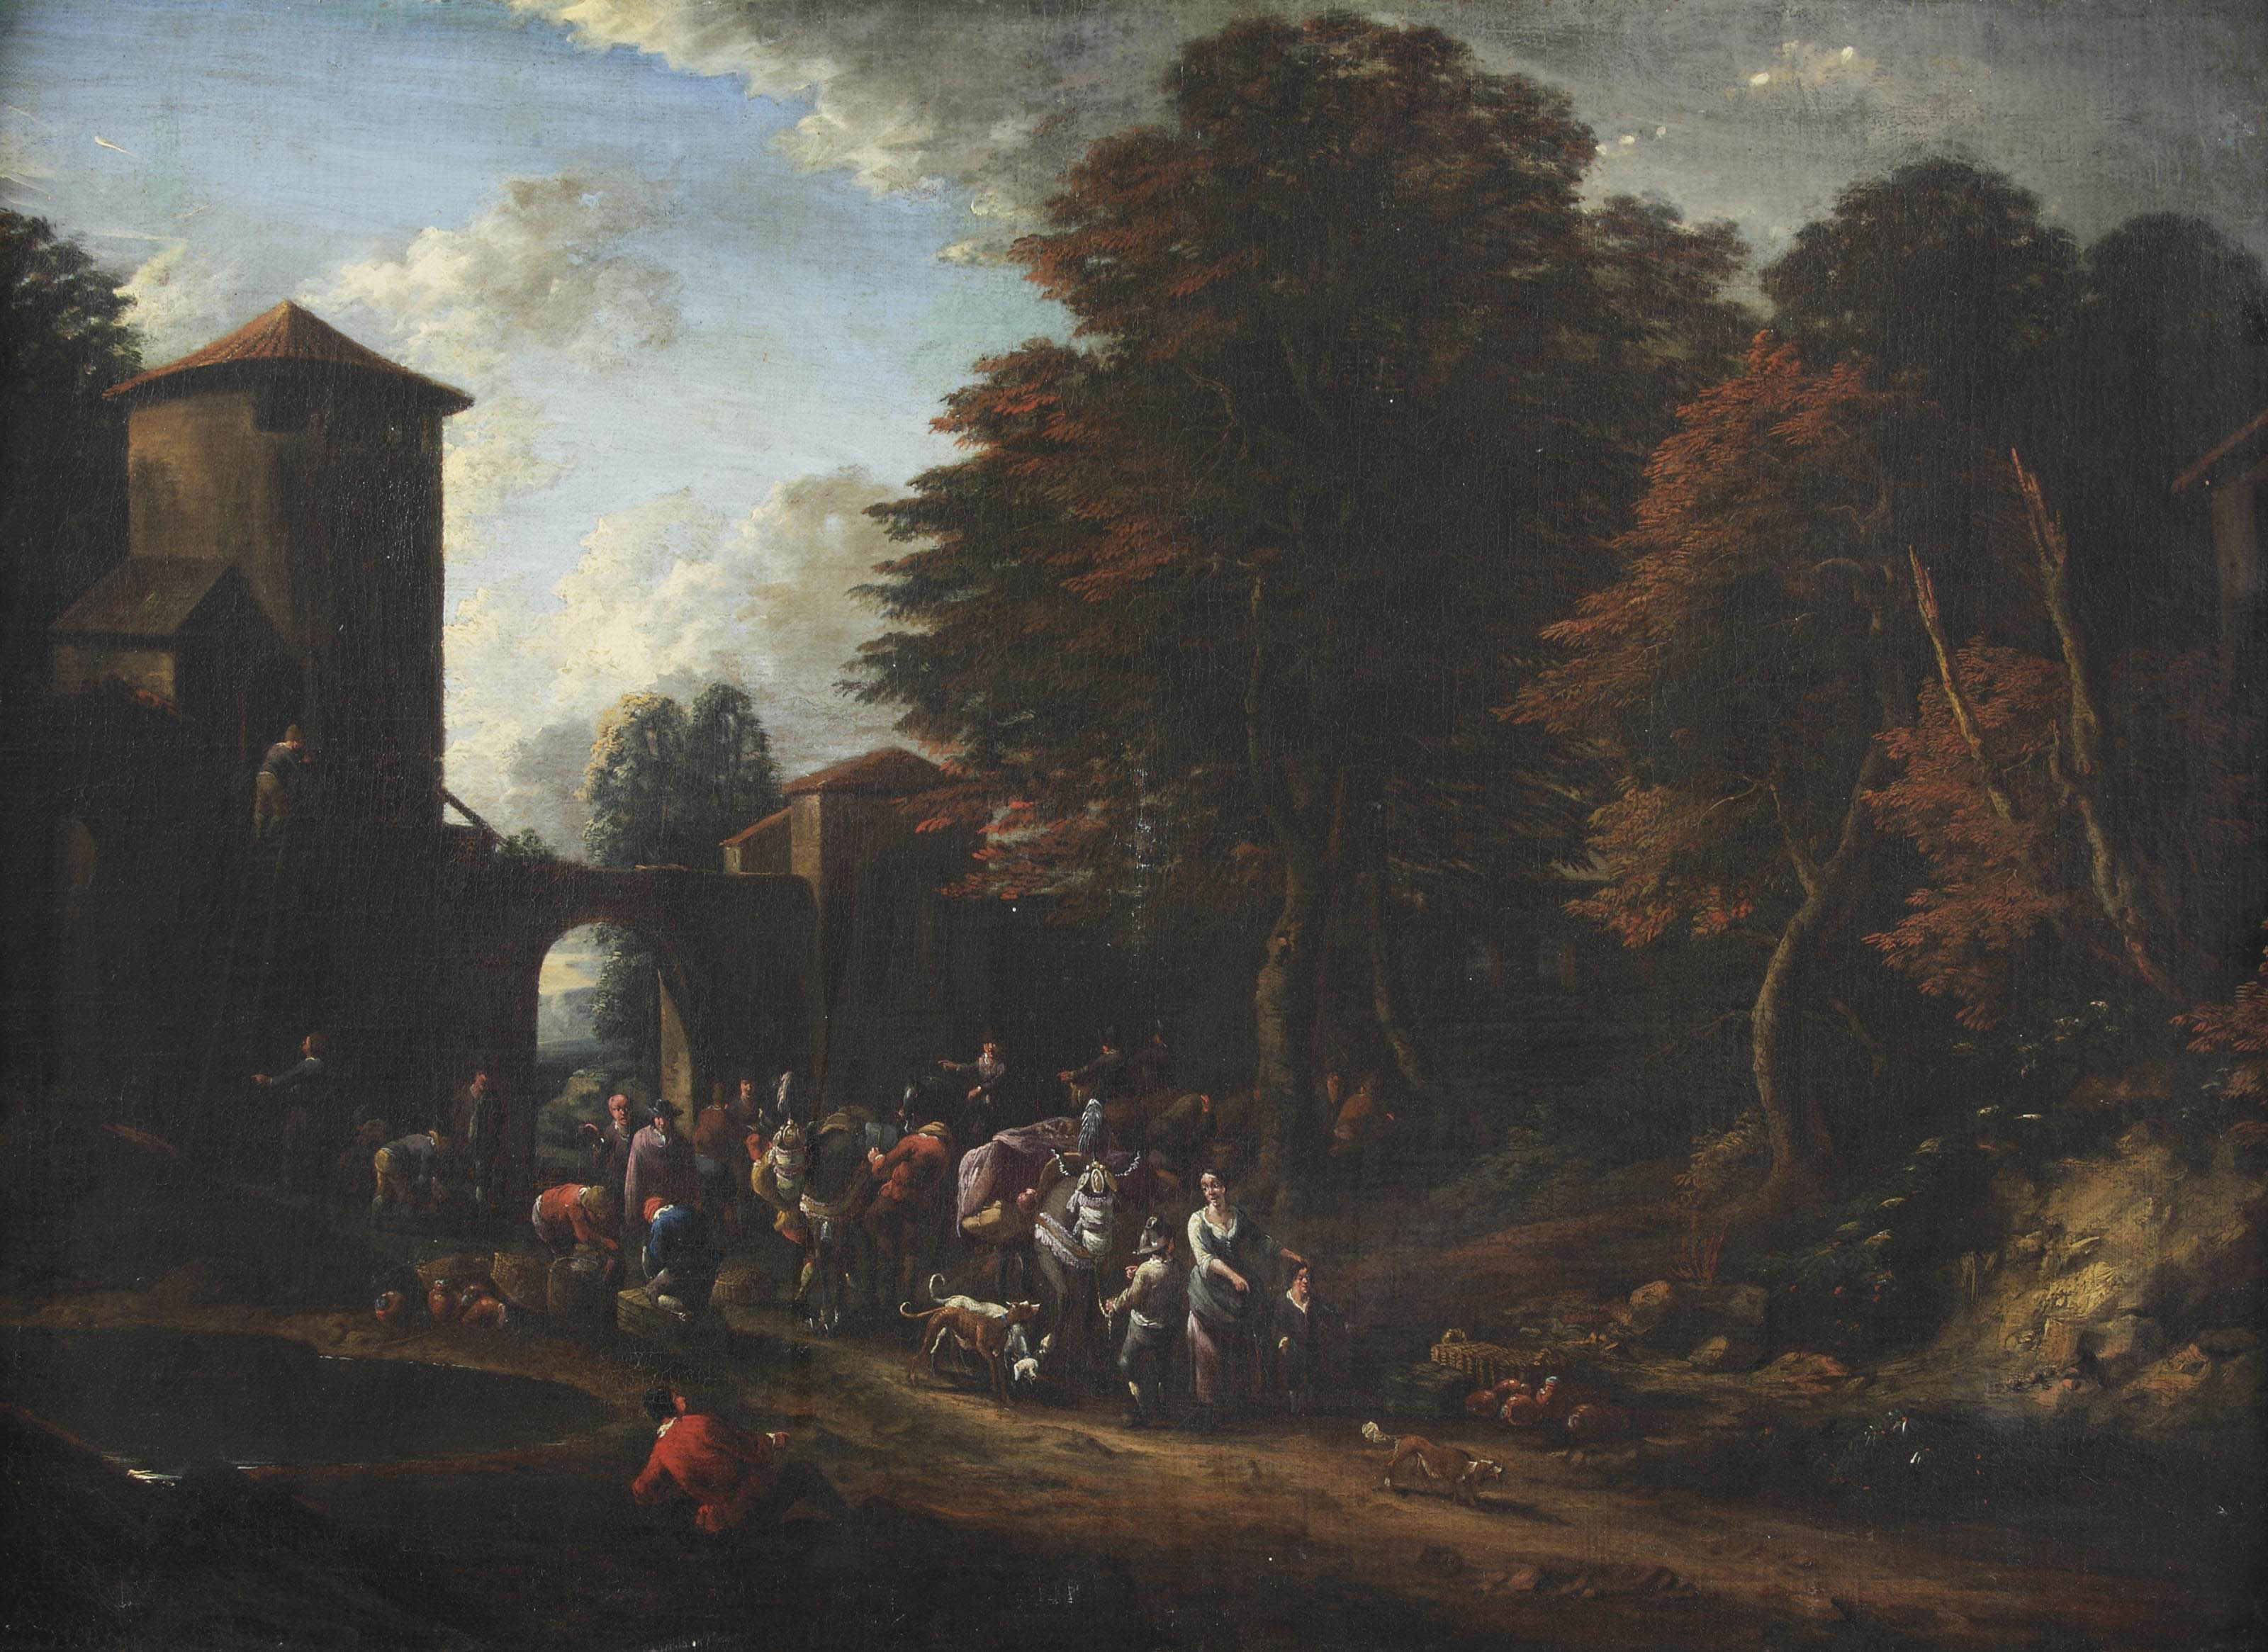 A wooded landscape with merchants near a village gate